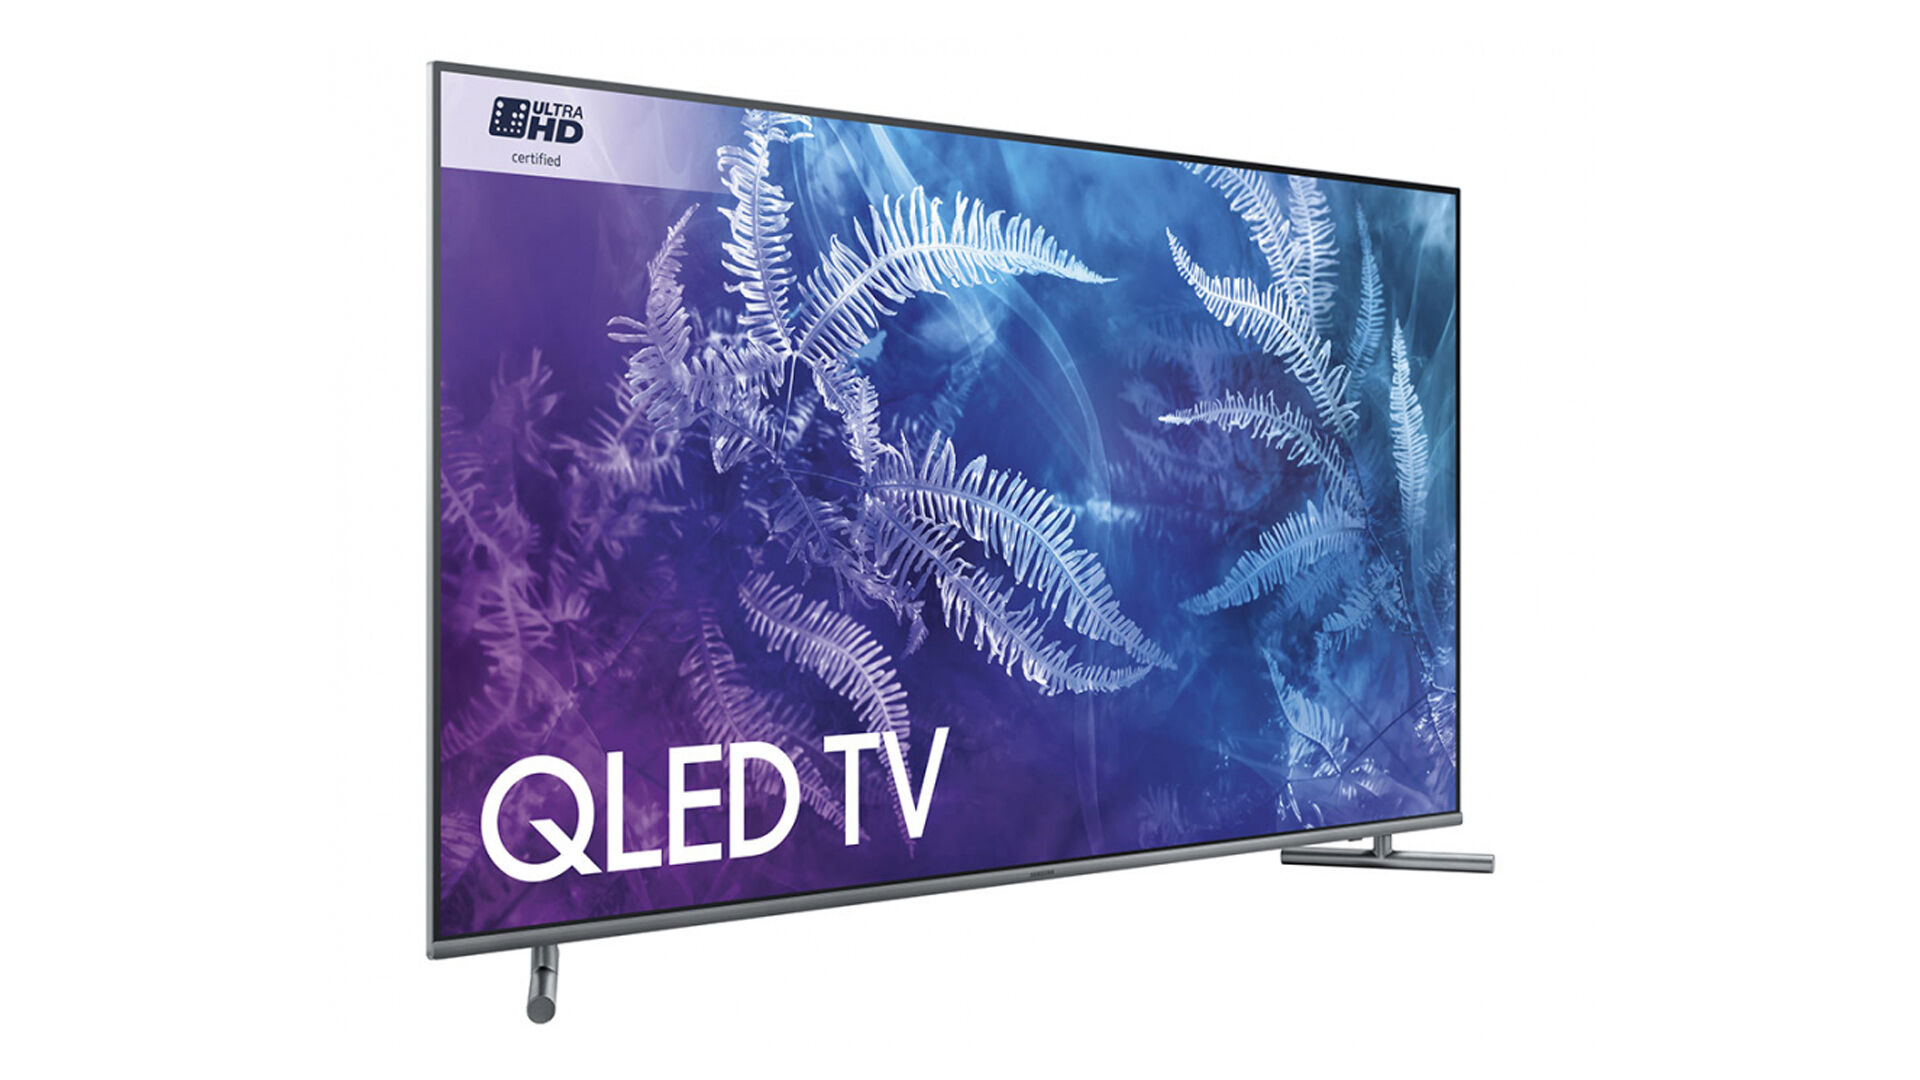 Black Friday 2017 Samsung S 55 Inch Qled 4k Hdr Tv Discounted Today Eurogamer Net